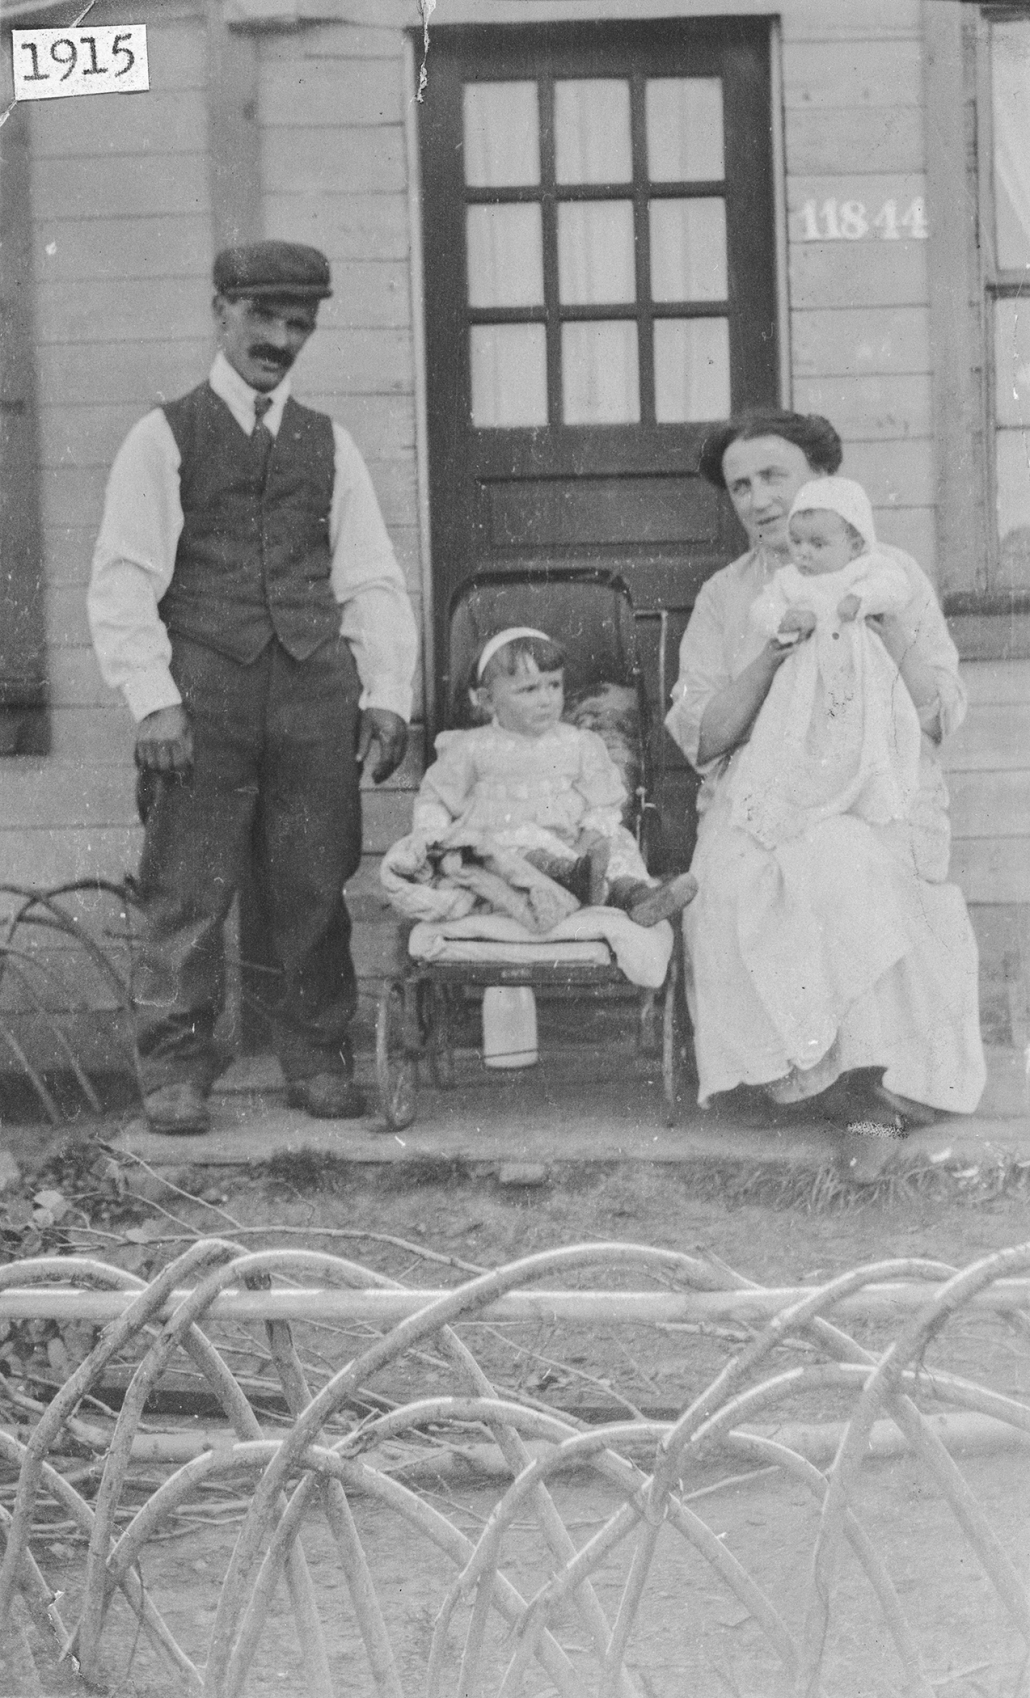 Francesco and Carolina Rusconi with daughters Angela and Florence at 11844 106 St., Edmonton circa 1915. From the Louis Biamonte finds. Image courtesy of the Provincial Archives of Alberta A10913. Do not reproduce.